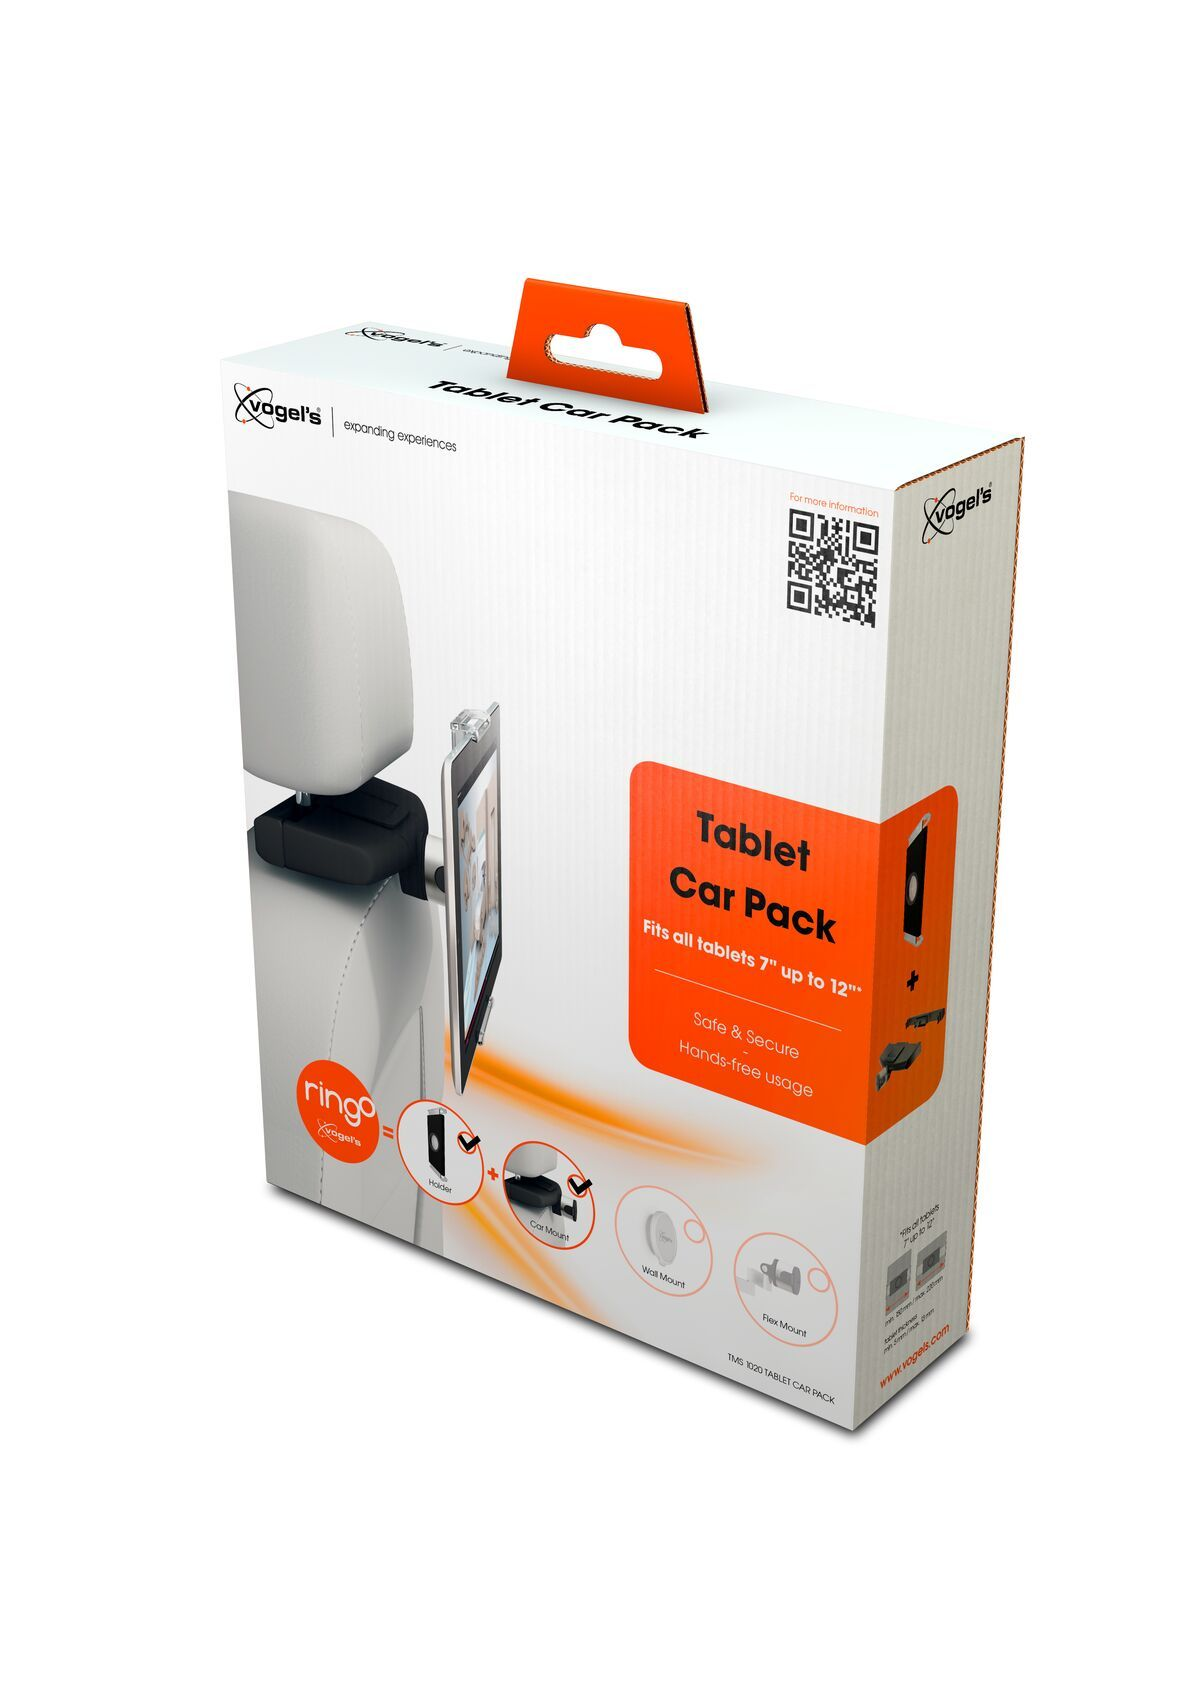 Vogel's TMS 1020 Tablet Car Pack - Pack shot 3D